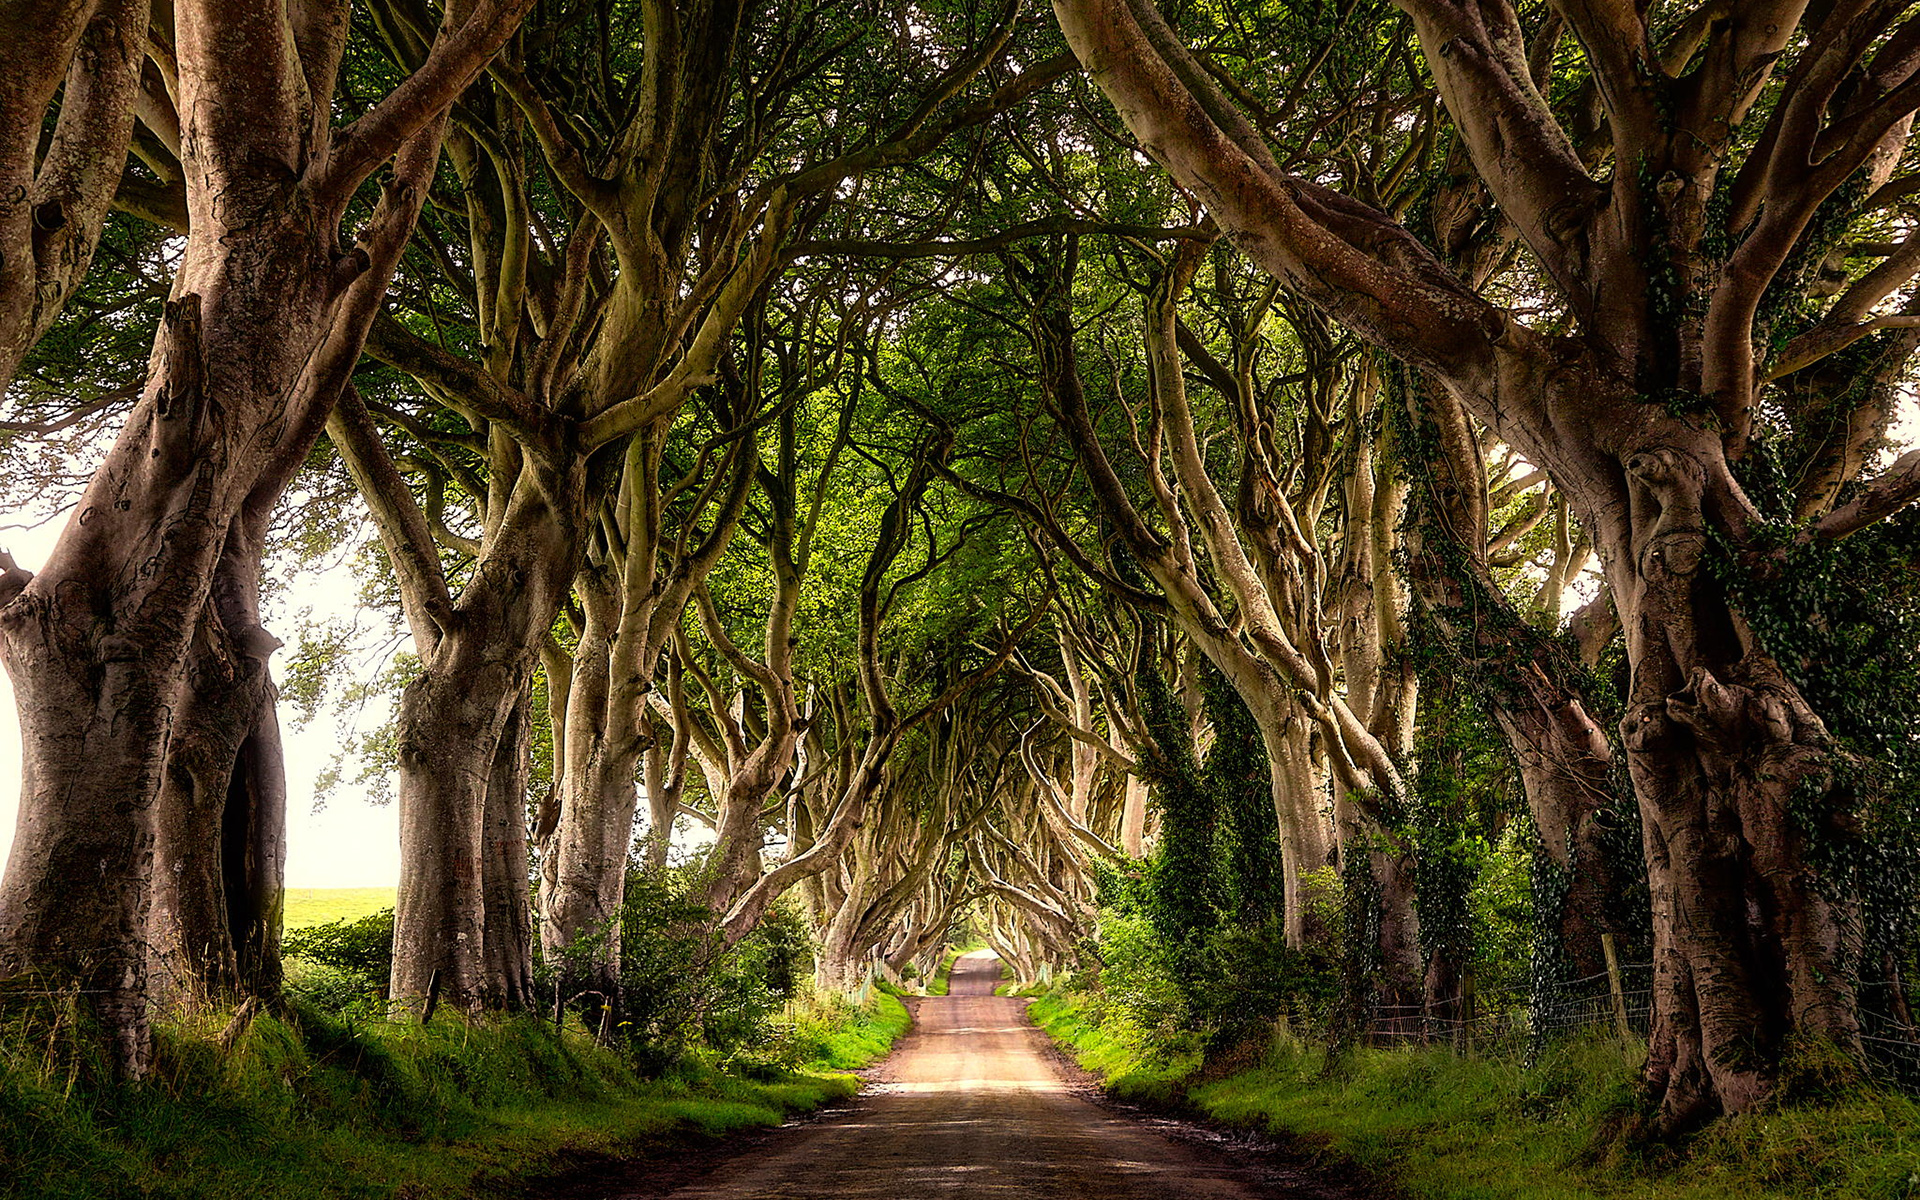 Game of thrones tours - dark hedges - waterfall caves